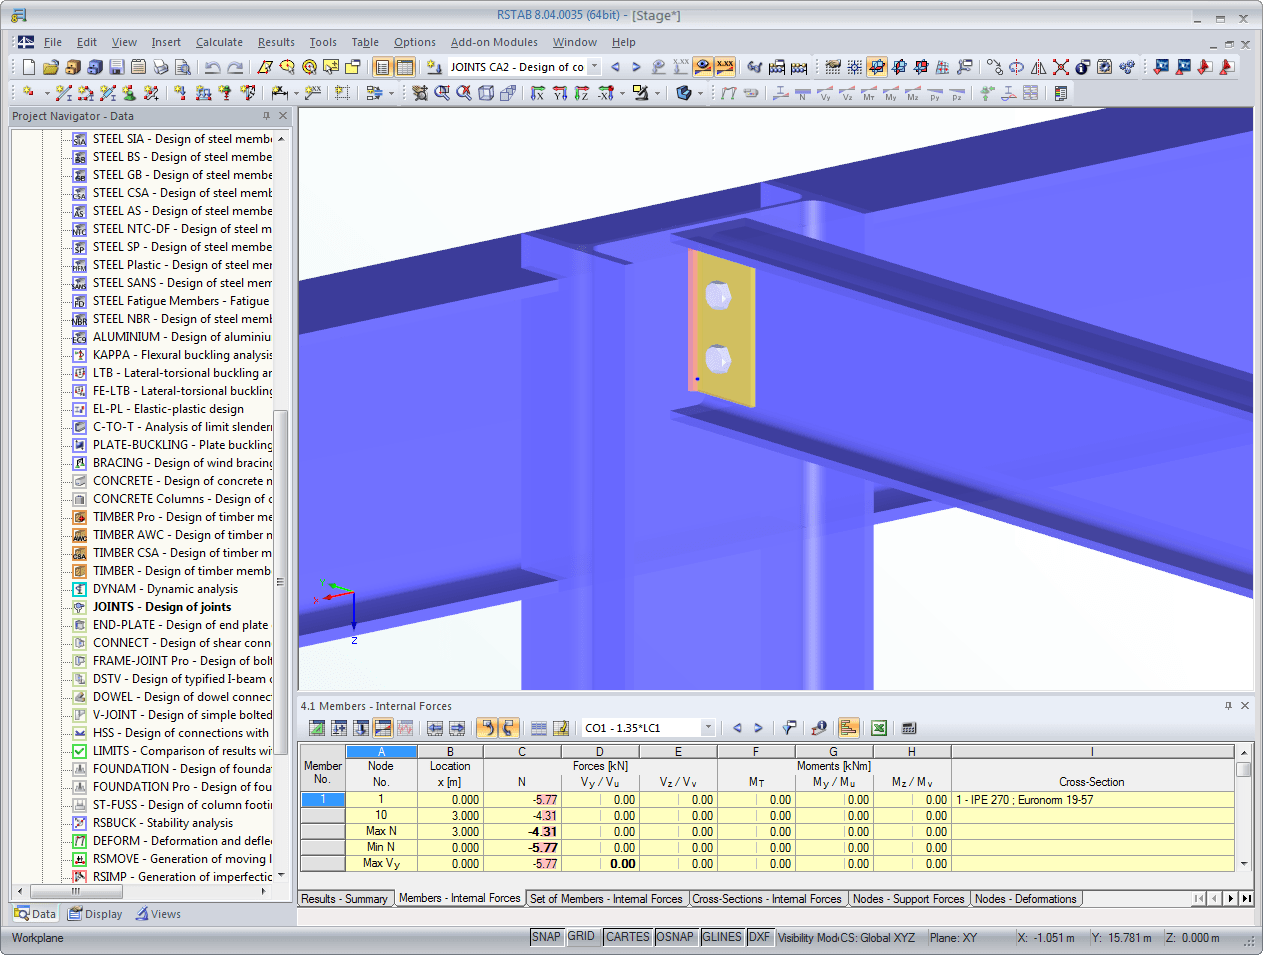 3D rendering of an angle connection in RSTAB designed in JOINTS Steel - Pinned